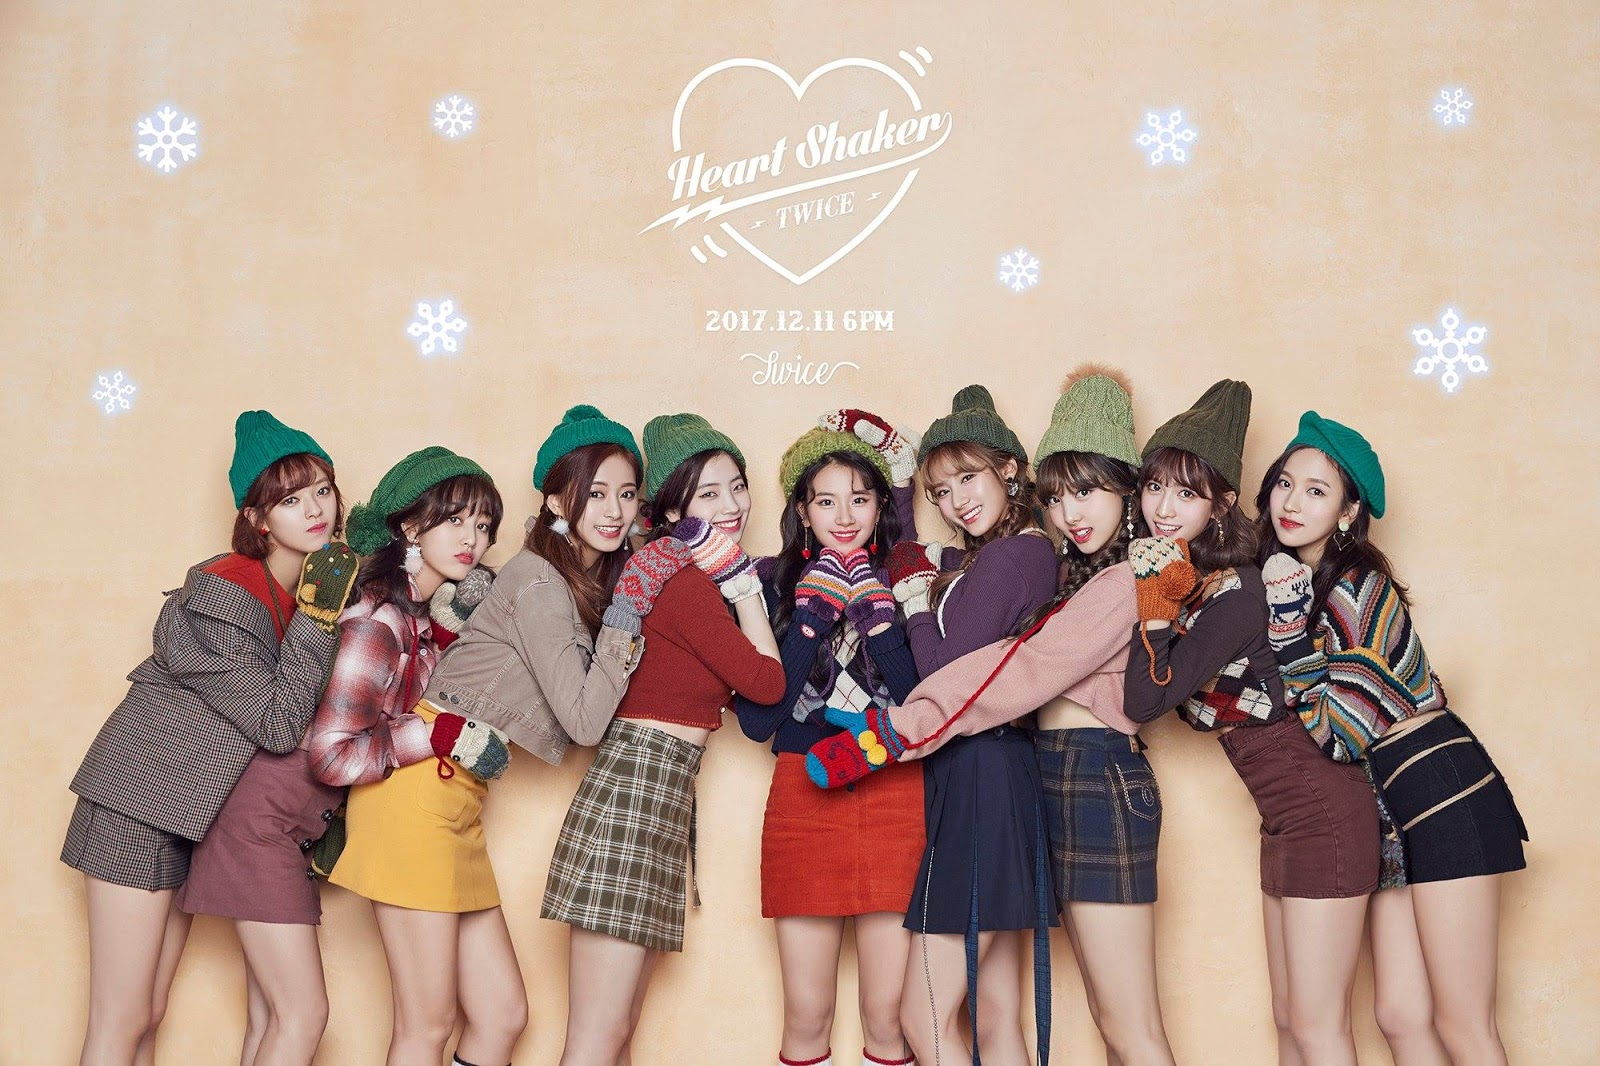 Wallpaper Twice Special Heart Shaker And Christmas 2000 X